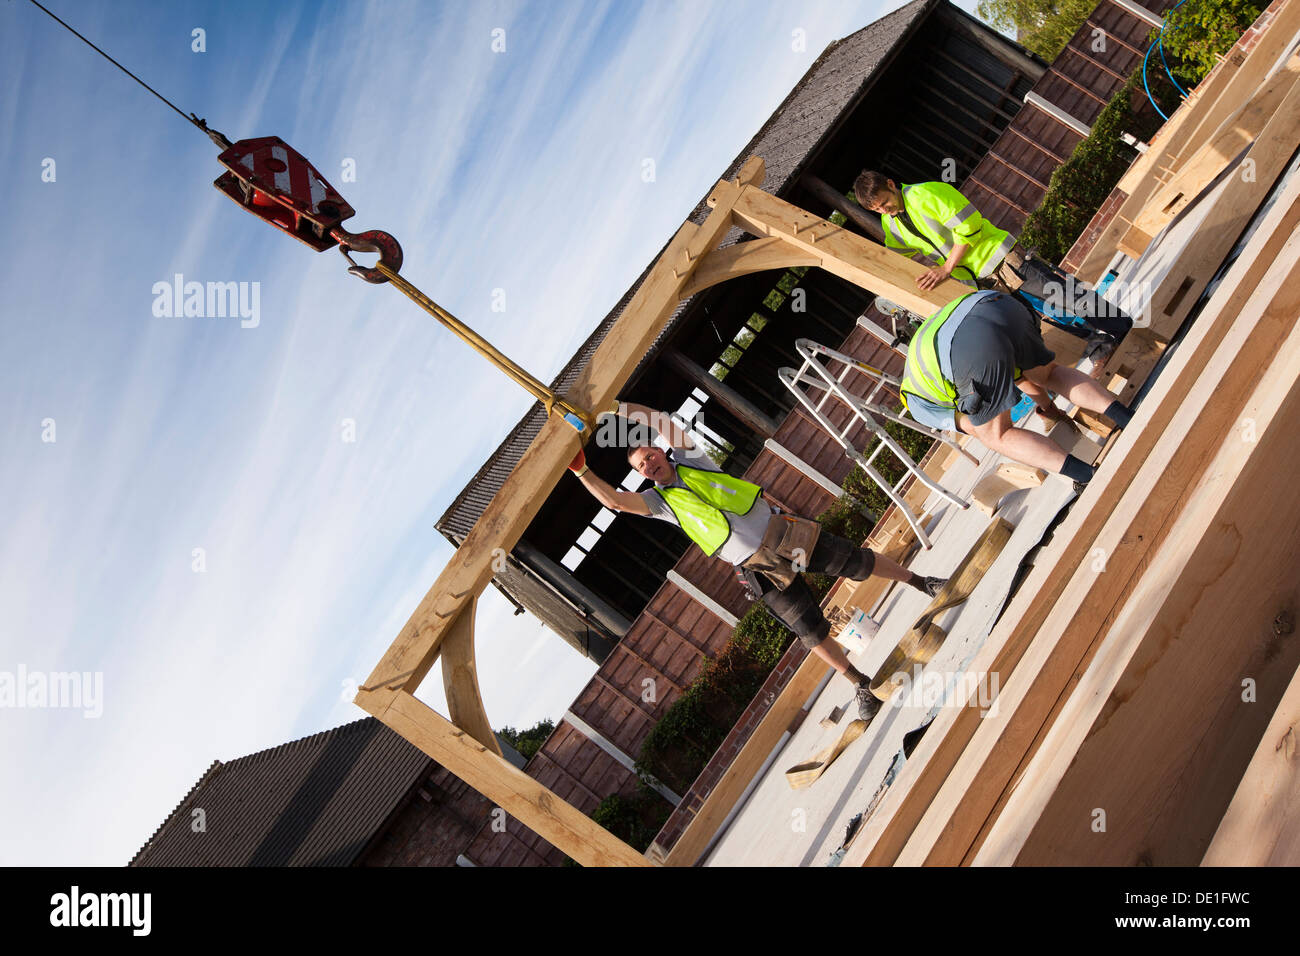 self building house, constructing green oak timber framed structure, using hired crane to lift heavy wooden components - Stock Image